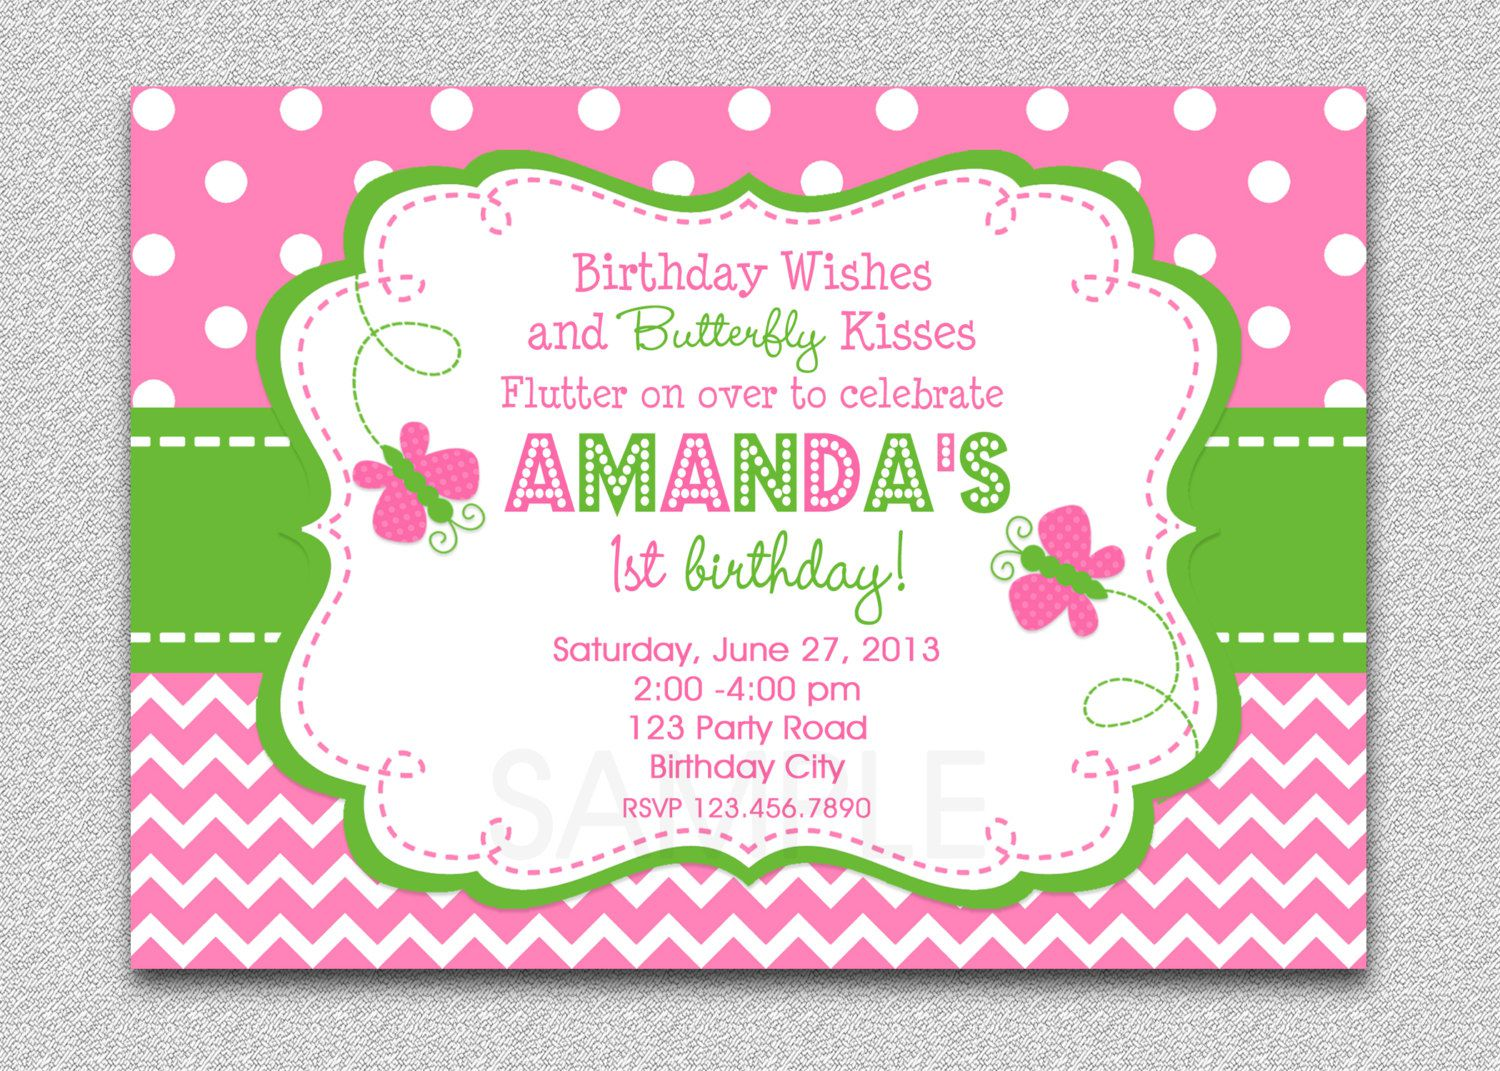 Butterfly Birthday Invitations Free Download